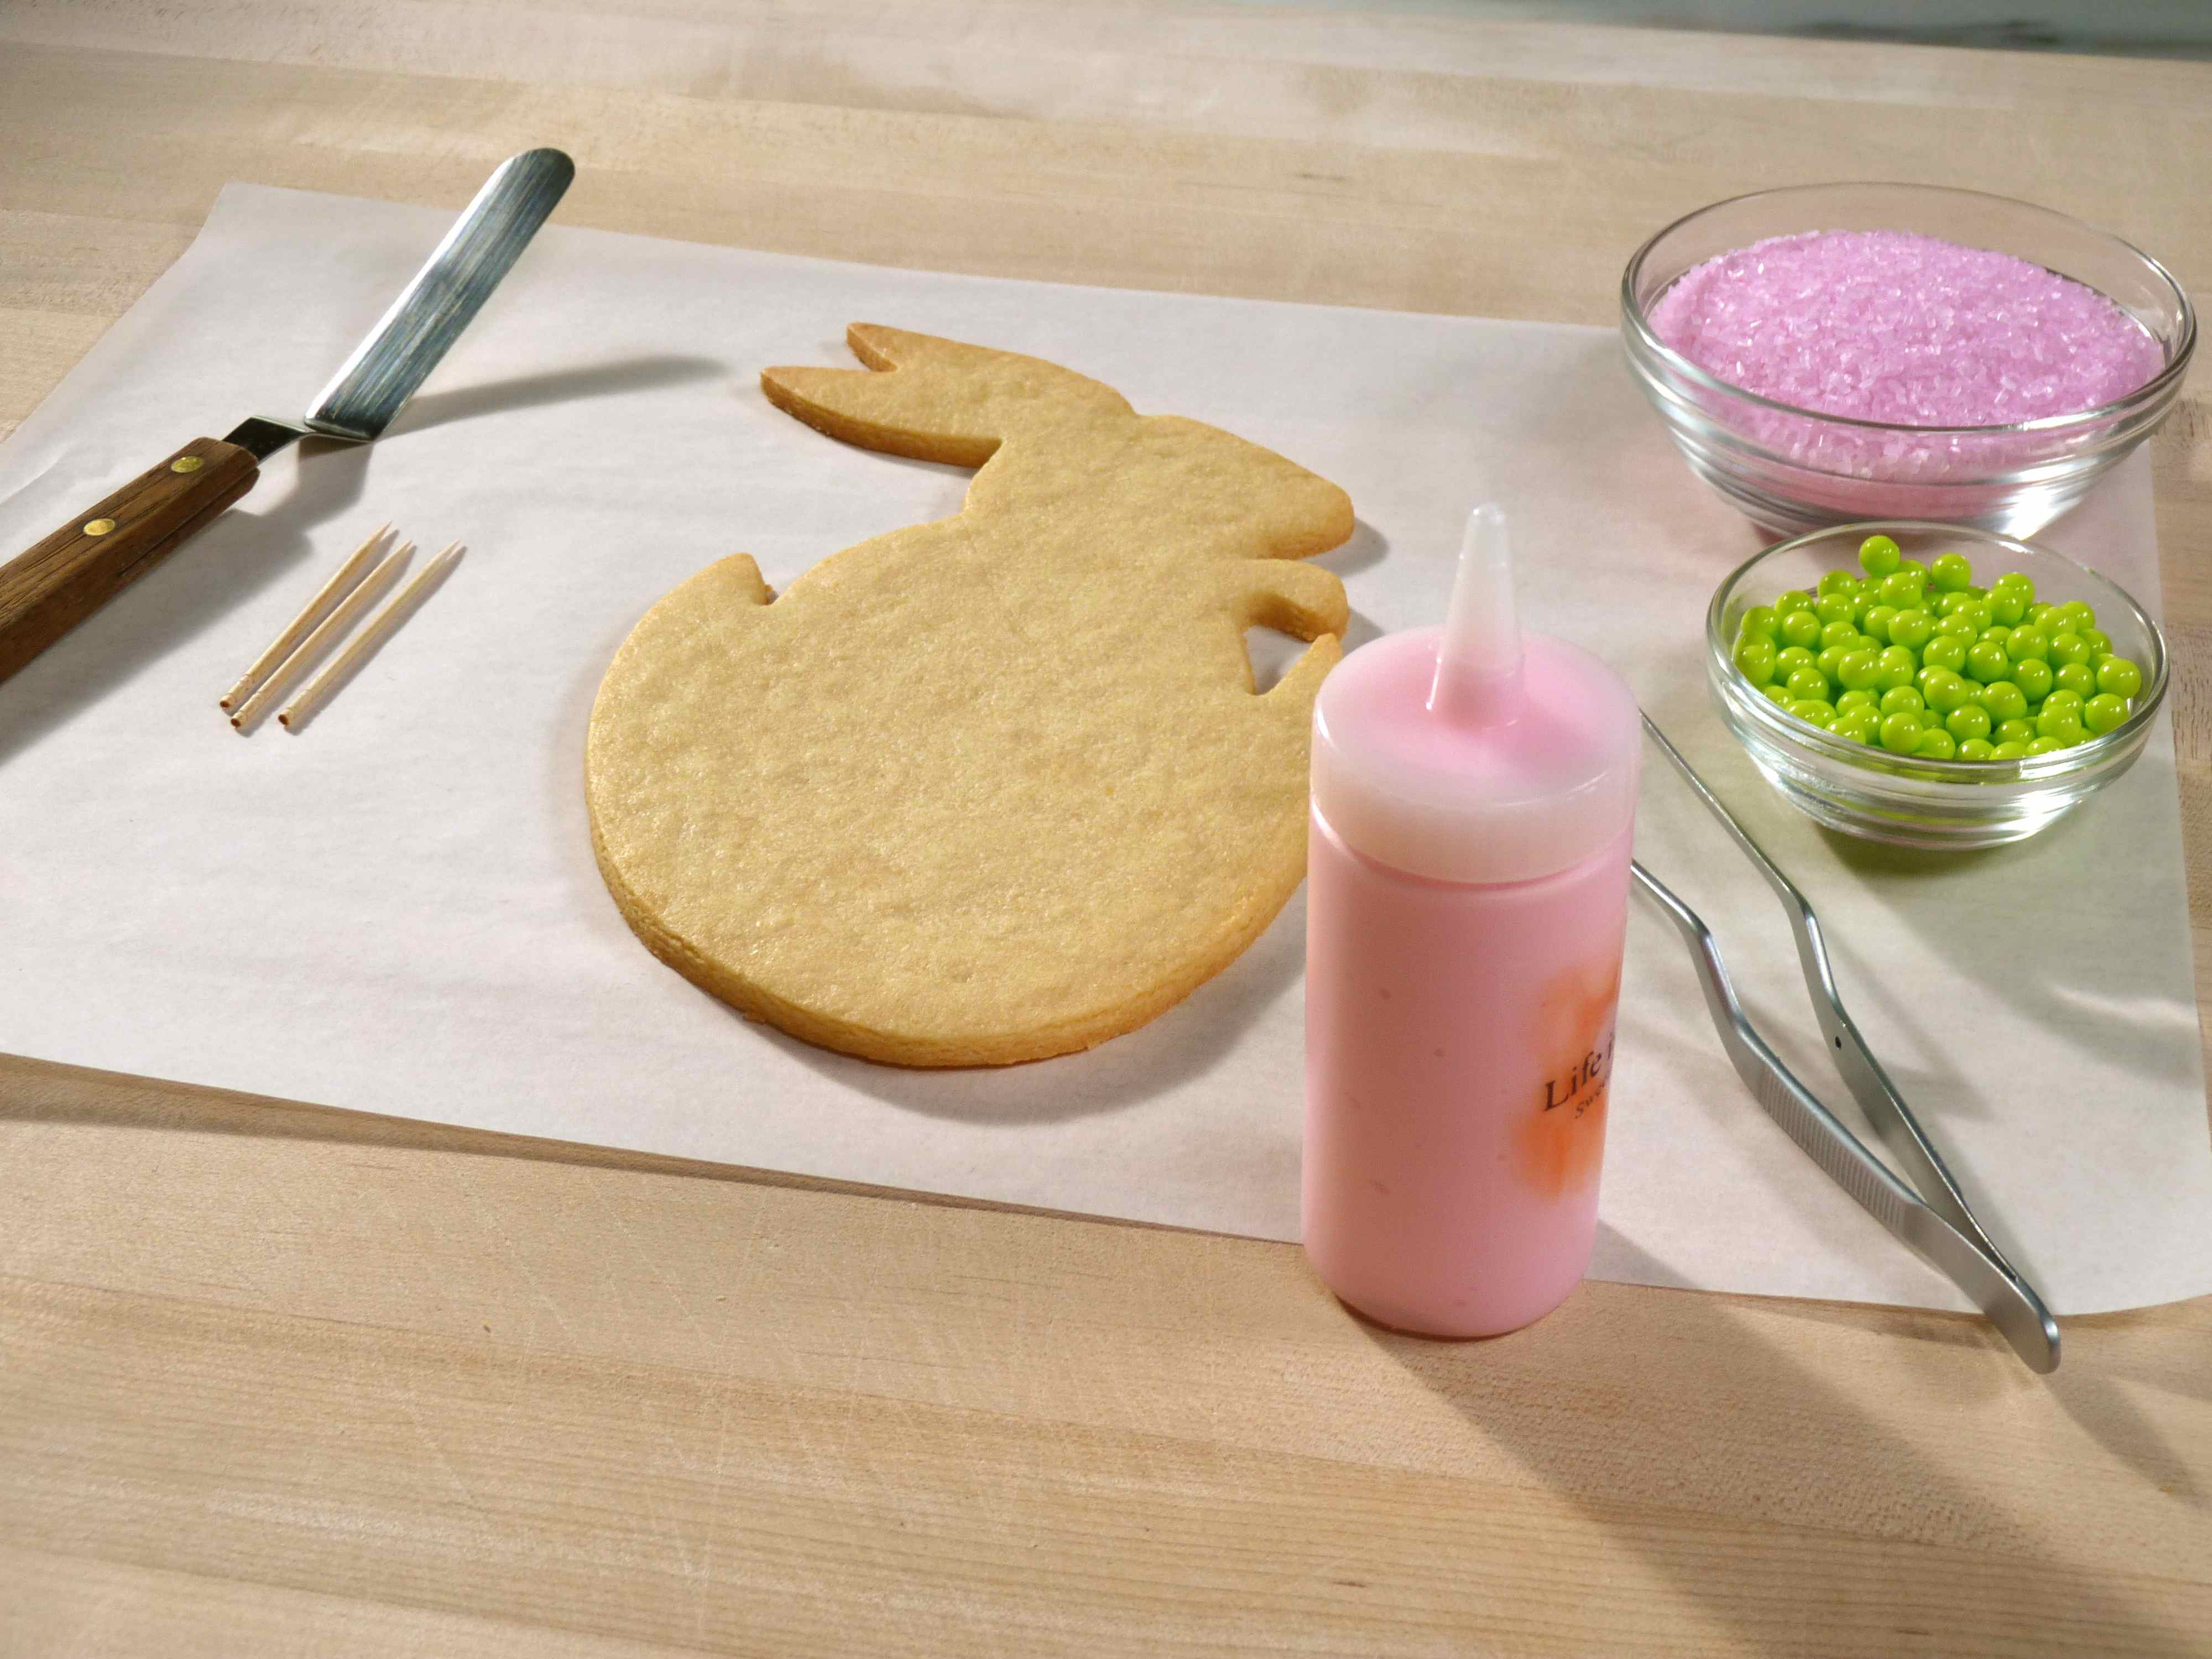 Hatching bunny cookie icing setup